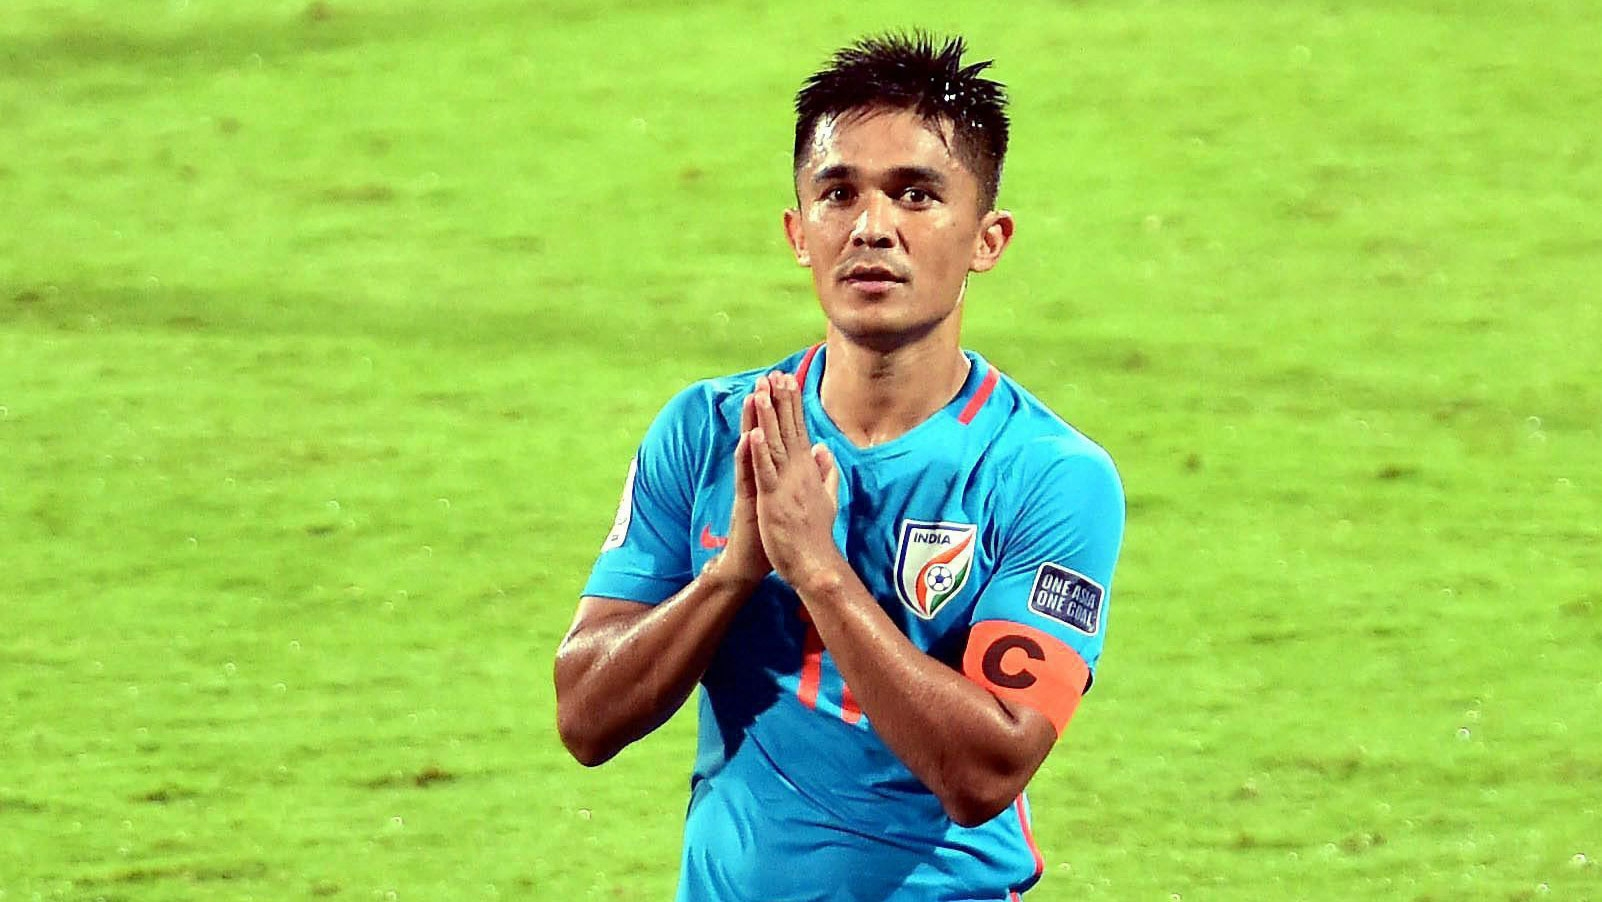 2015 Still Hurts But Chhetri Focused On 2019 Asian Cup